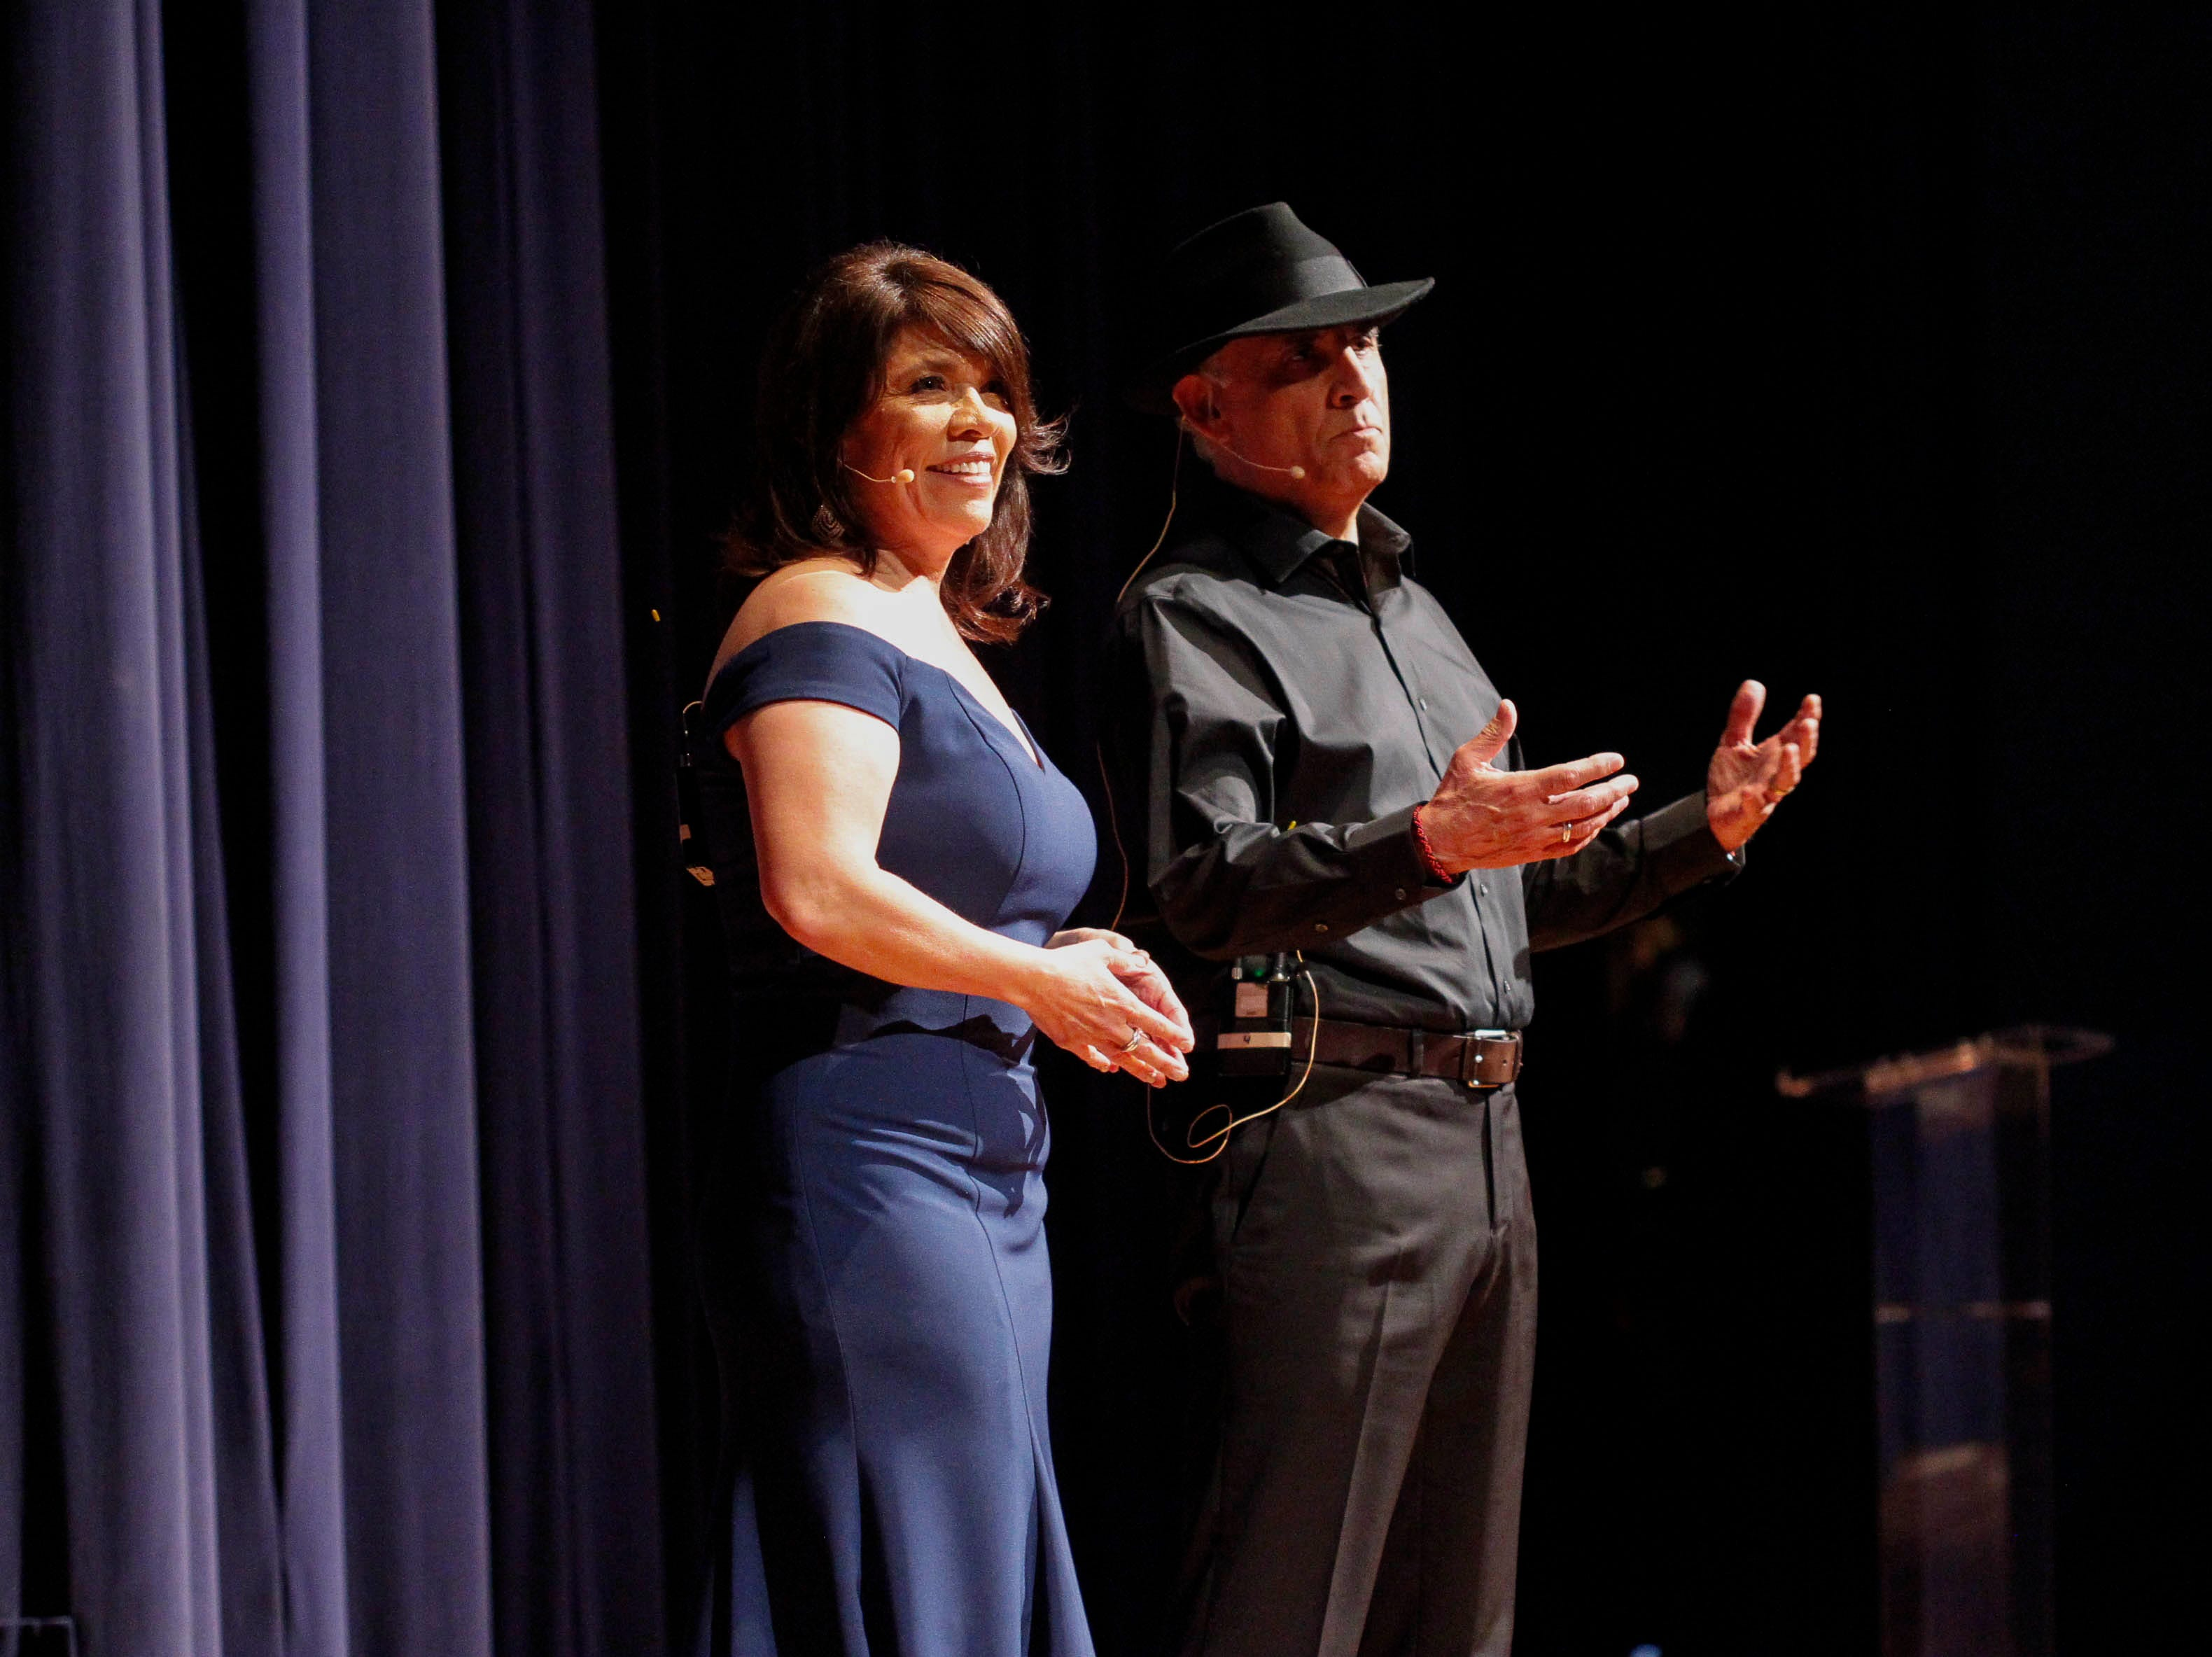 Adela Castillo and Jose Alejandro Moran address the attendees during the 12th annual Noche Bohemia at Sherwood Hall on Saturday, April 27, 2019 in Salinas, Calif.